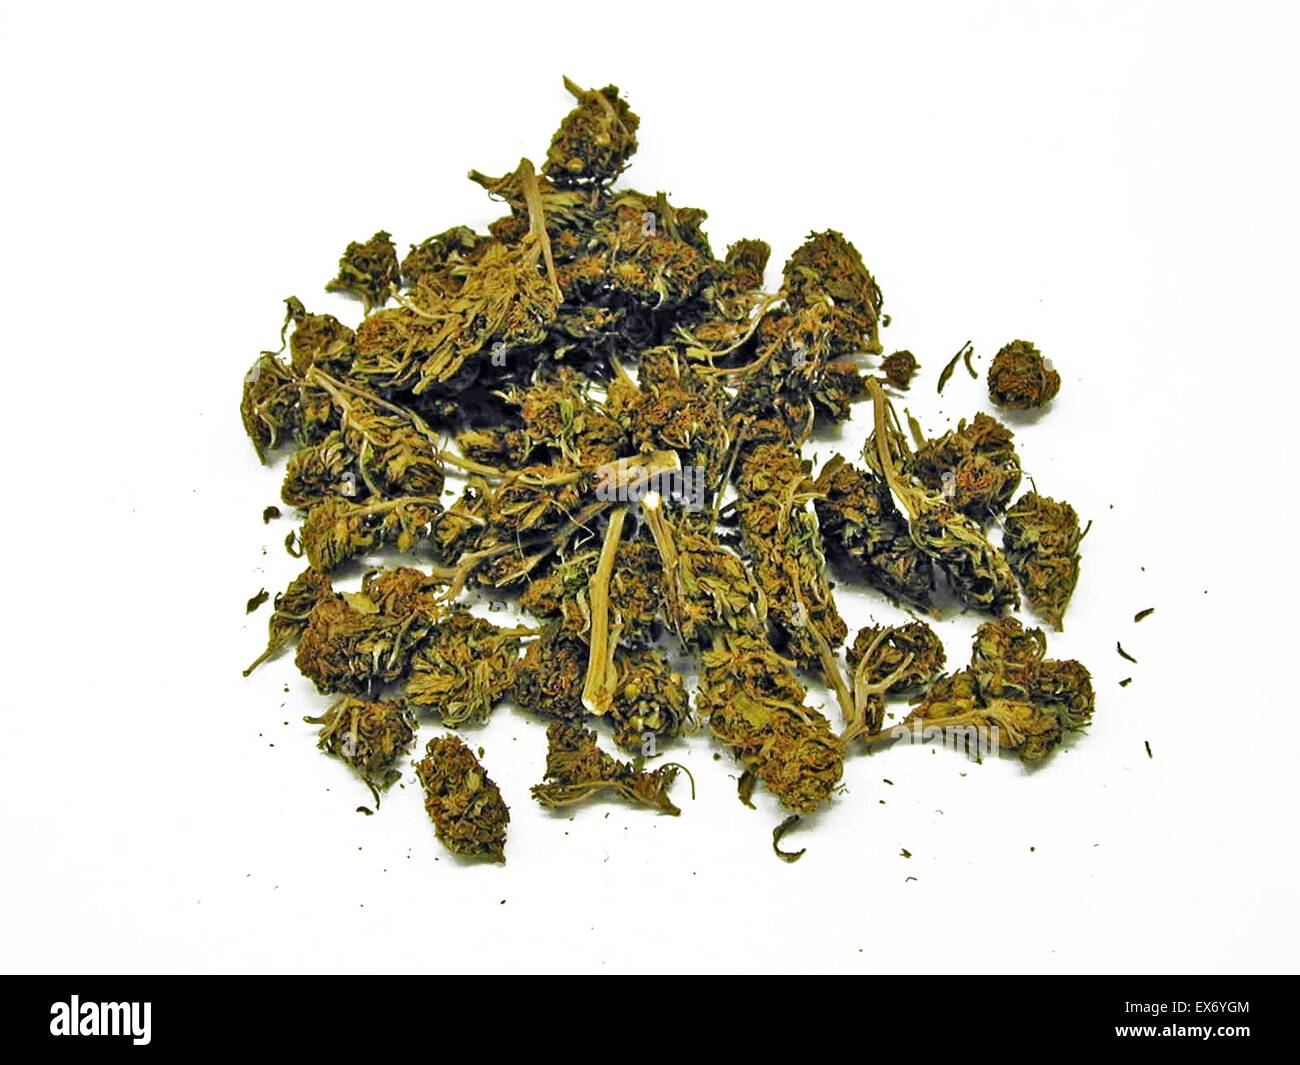 Cannabis, commonly known as marijuana is a psychoactive drug and as medicine, which can include heightened mood or euphoria, relaxation and as increase in appetite. Possible side-effects include a decrease in short-term memory, impaired motor skills and f Stock Photo